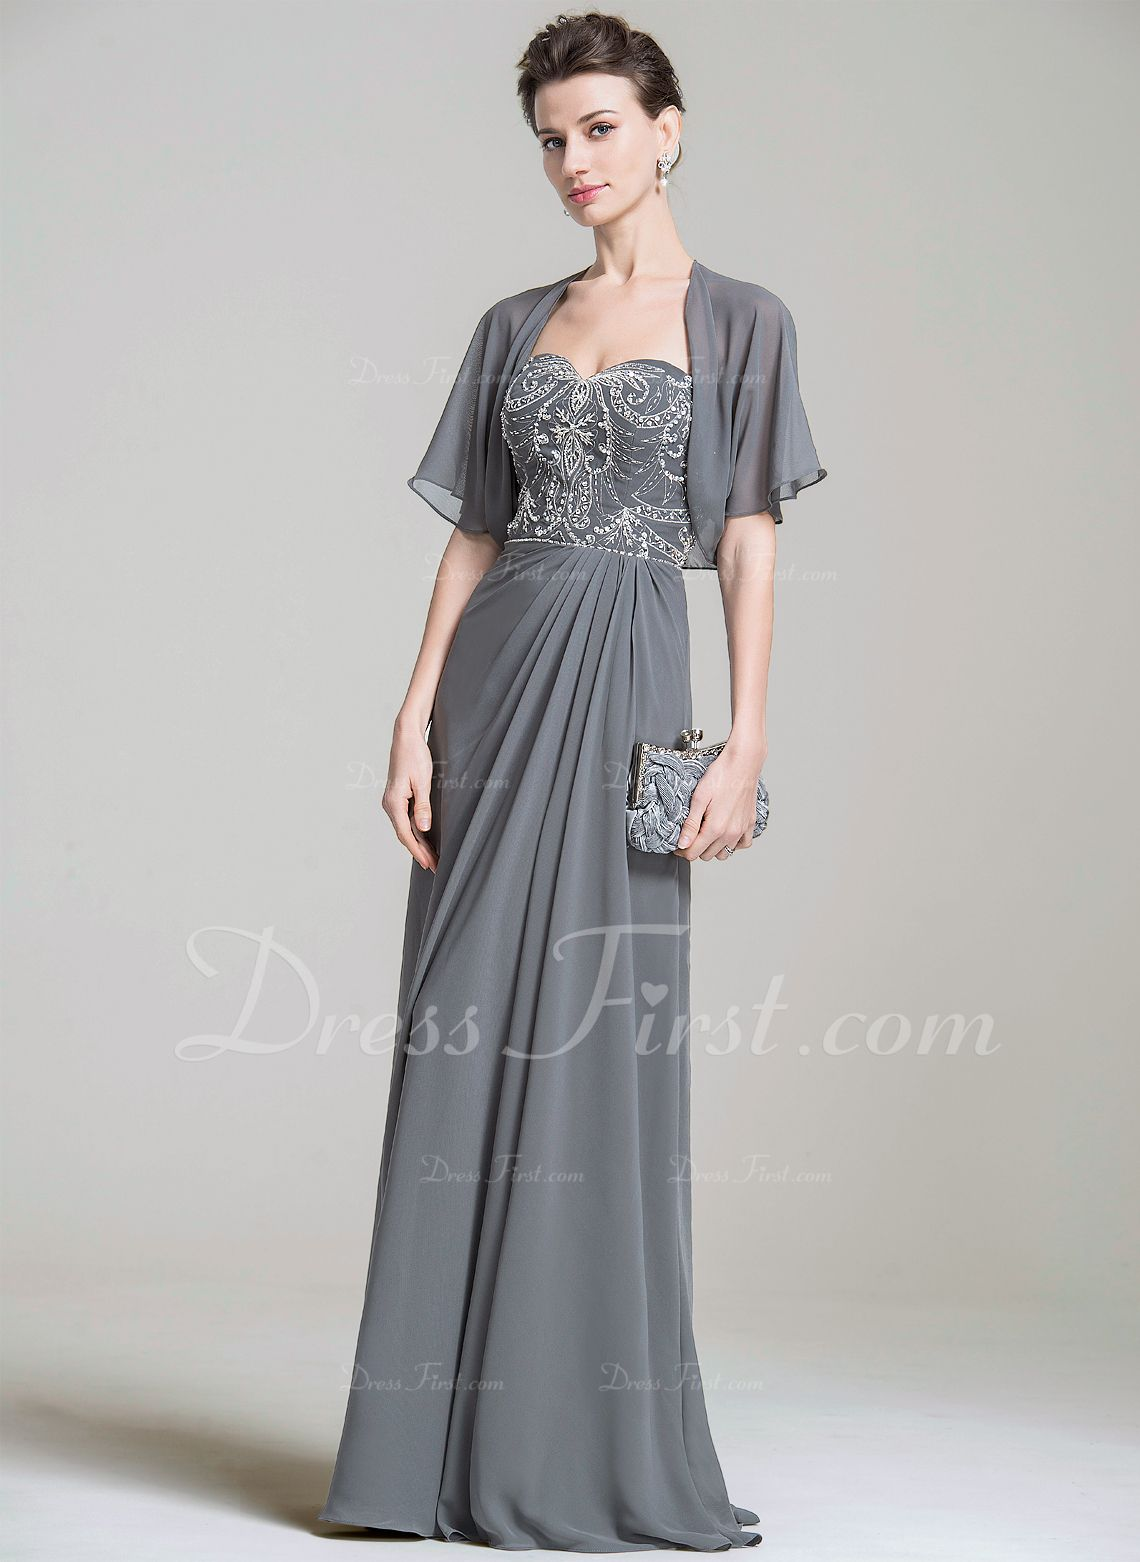 69af45218c Short Sleeve Chiffon Special Occasion Wrap (013080280) - Wraps - DressFirst